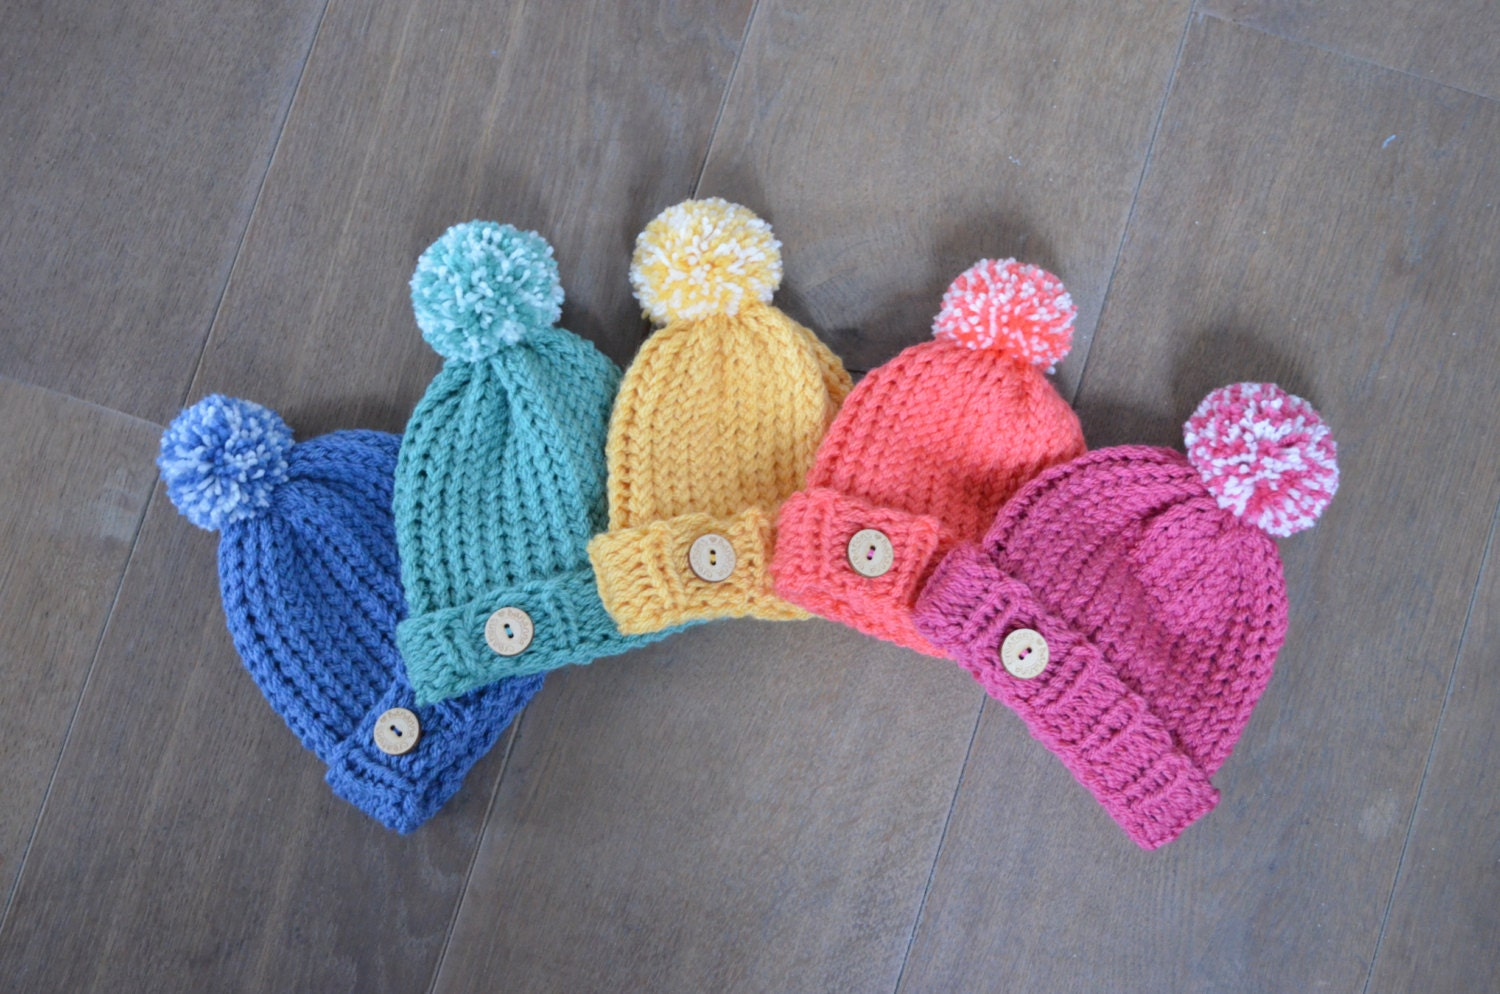 Newborn Baby Hat - Knitted baby beanie - Baby hat with pompom - Gender  reveal hat 9d9ec908940c